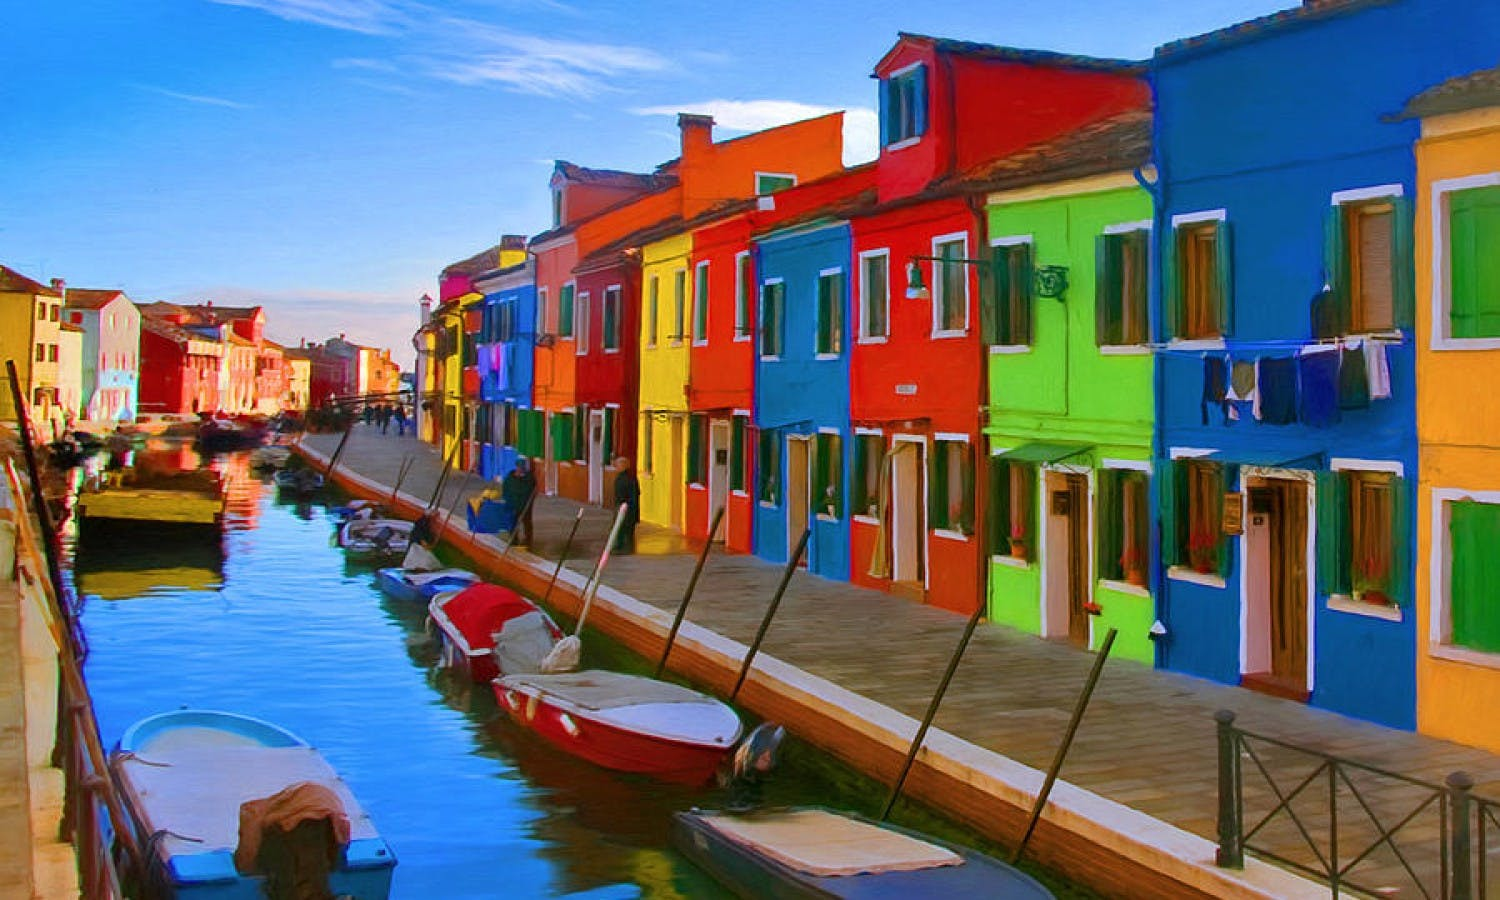 Excursion to the Islands of Murano, Burano and Torcello